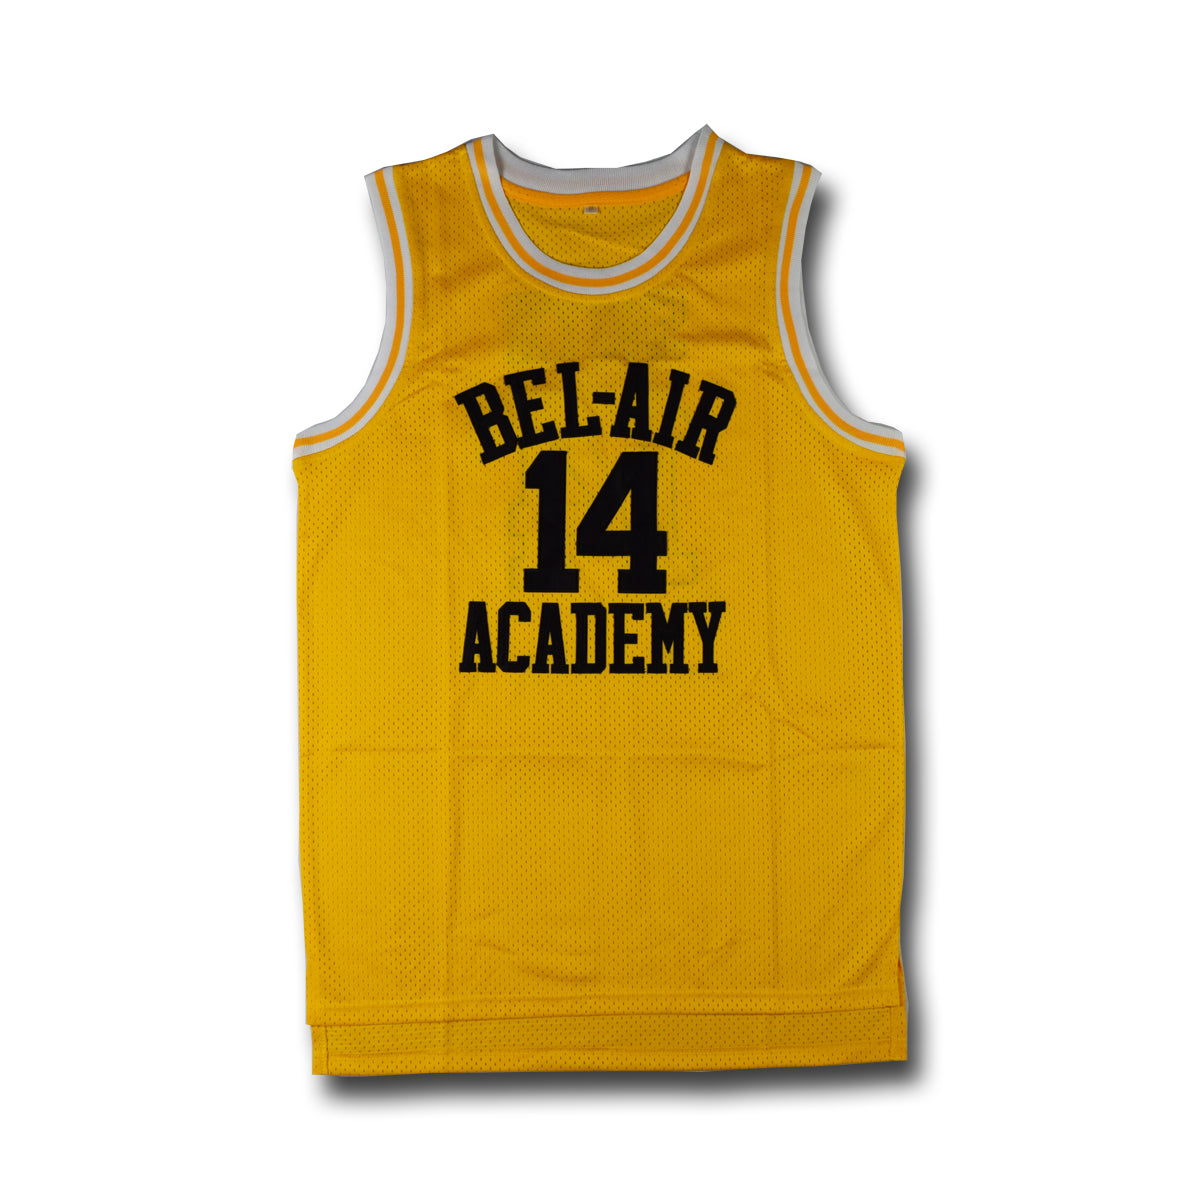 579fee60afc Men's Will Smith #14 Bel-Air Academy Yellow Basketball Jersey